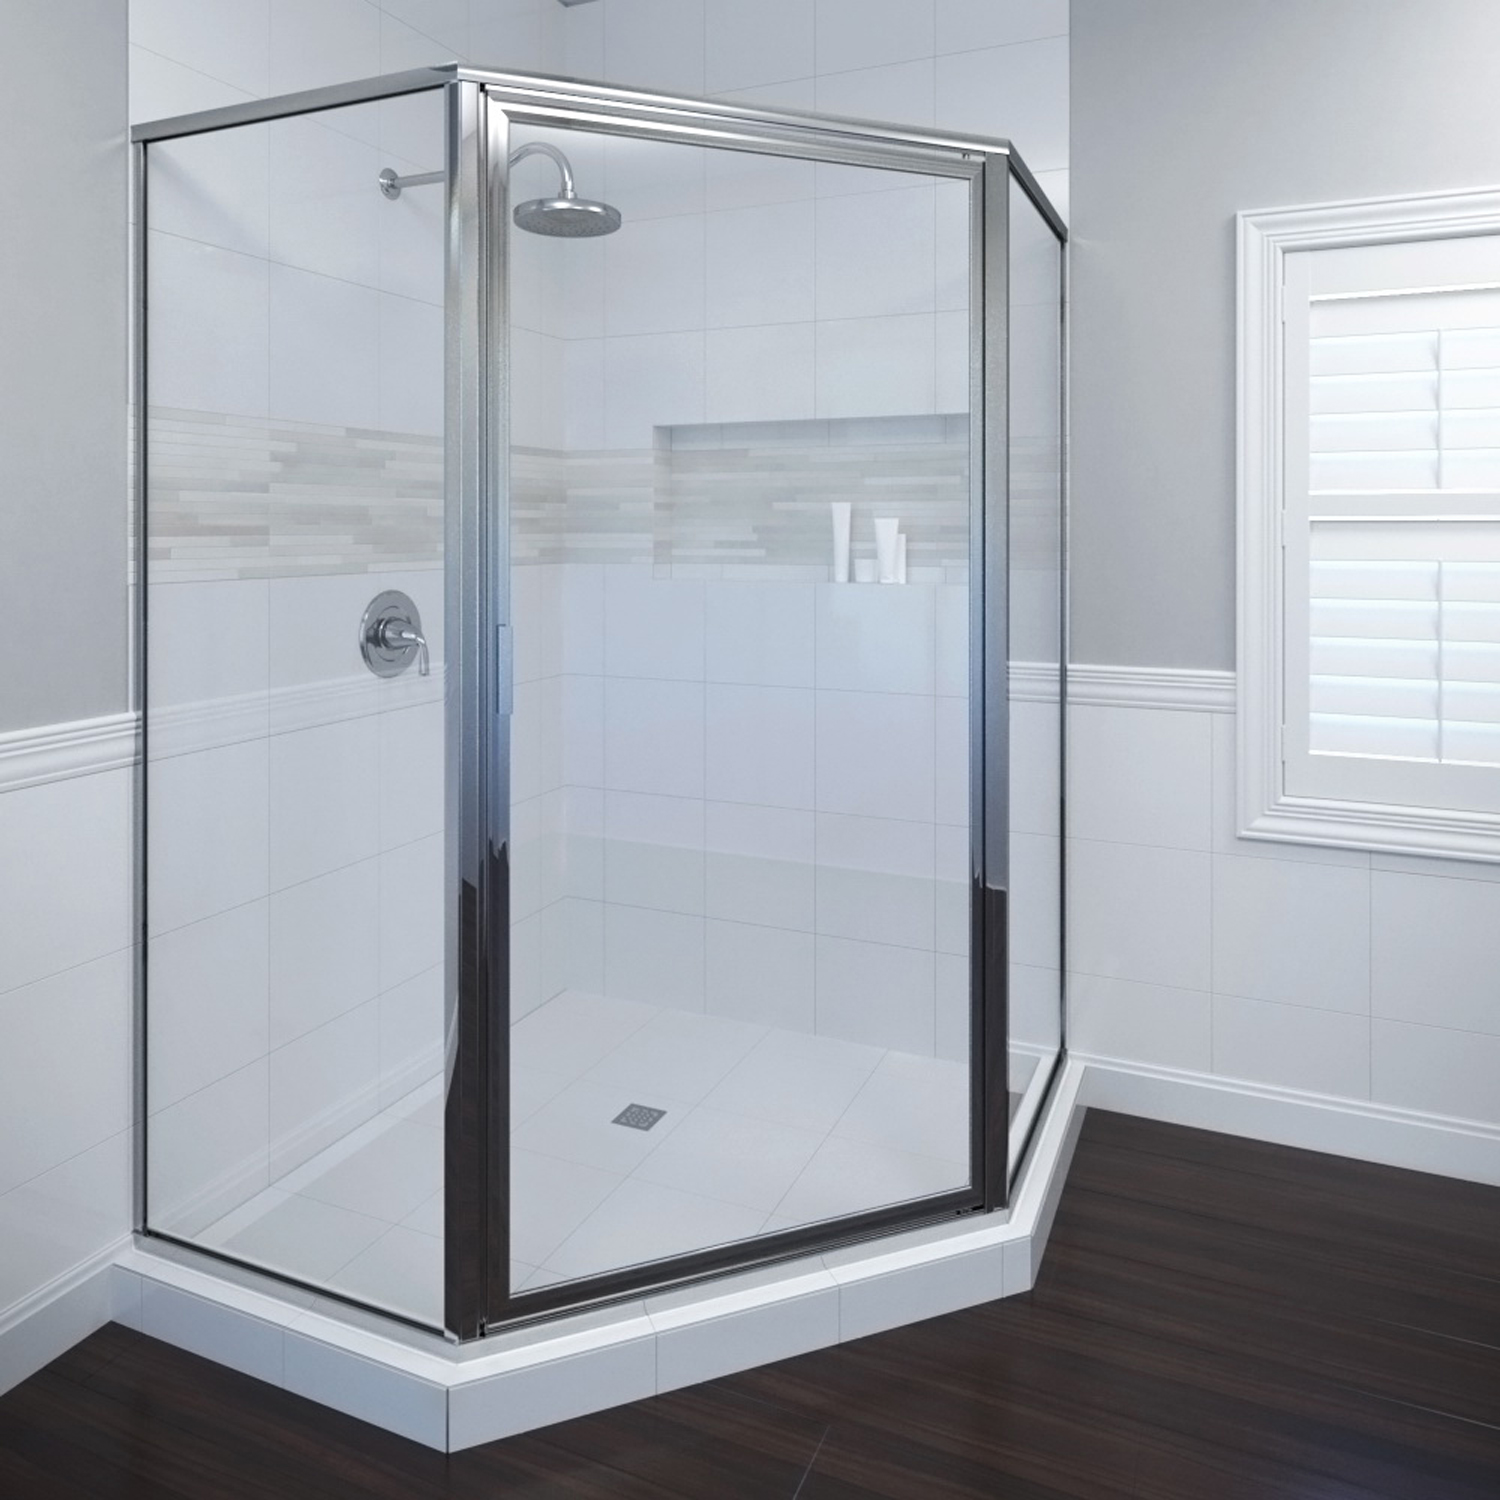 Basco 160lsbcl Deluxe Neo Angle Shower Enclosure With